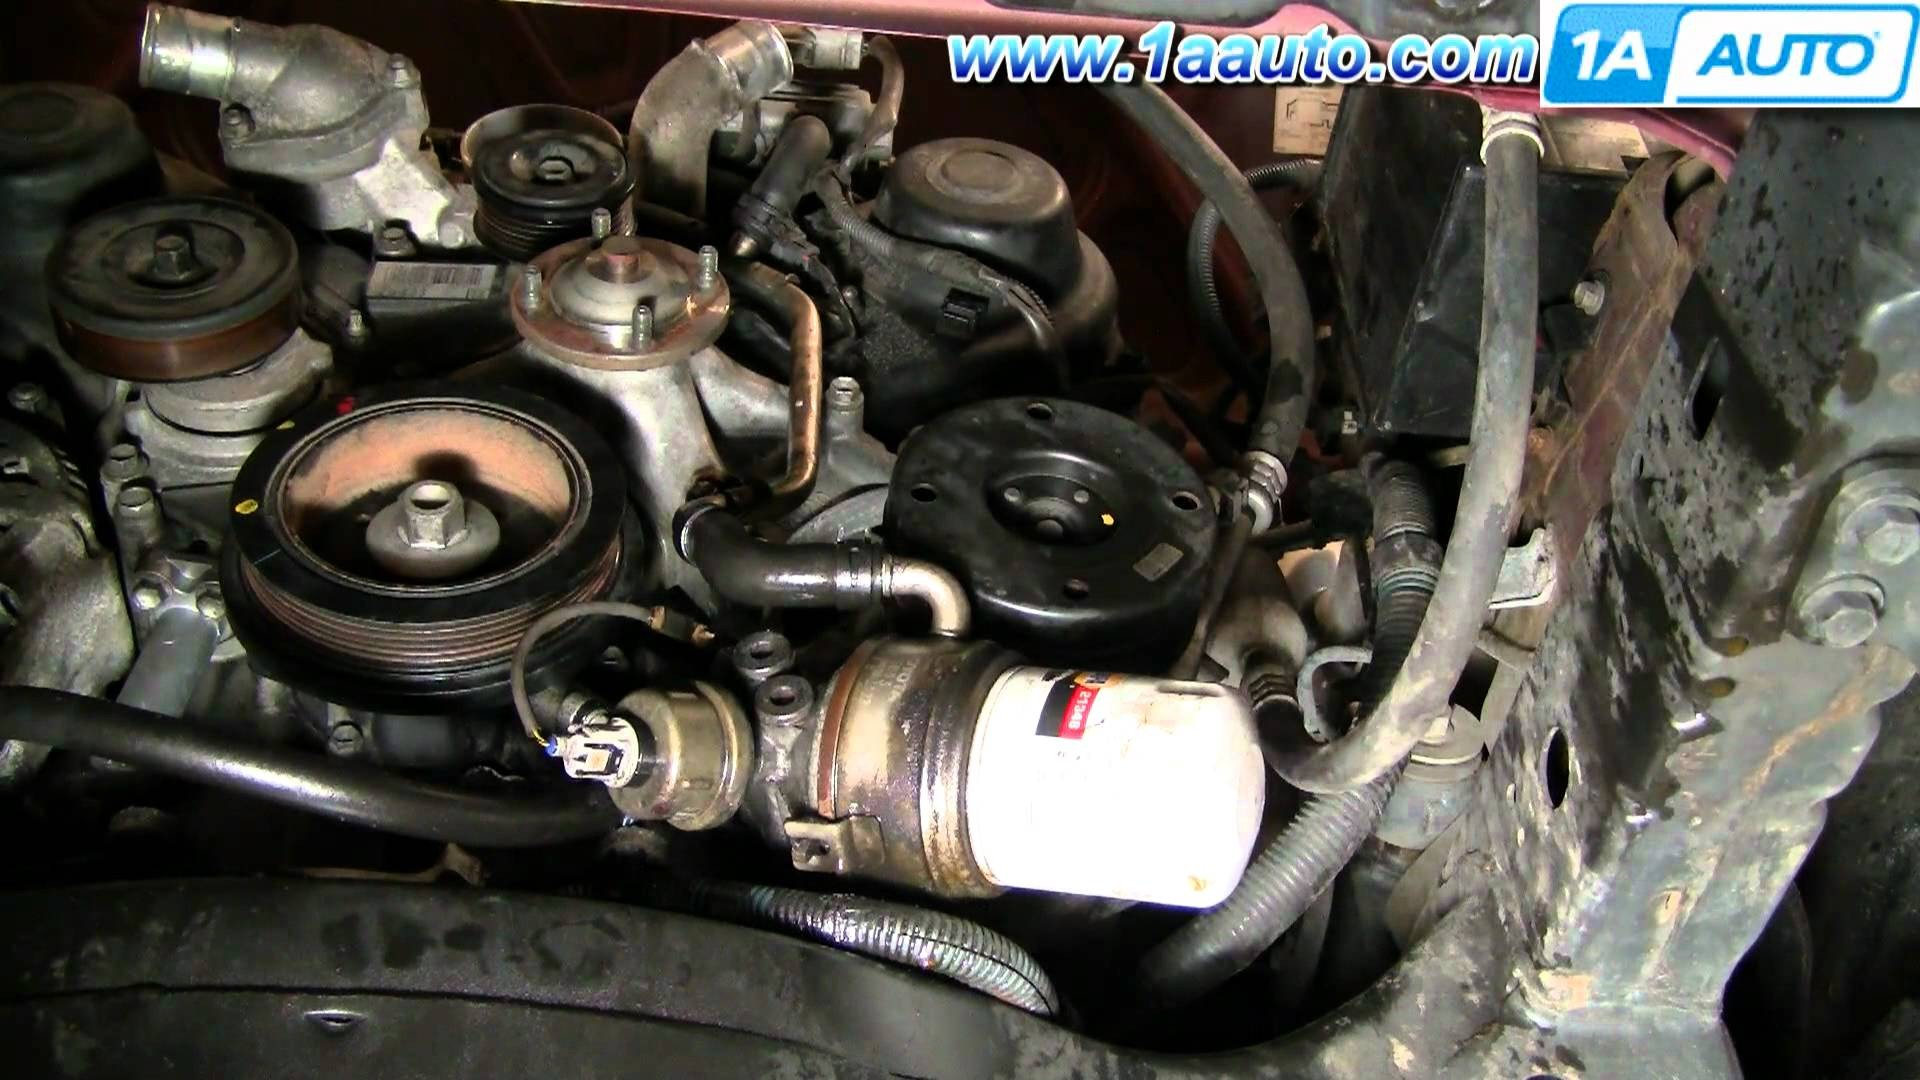 hight resolution of 2001 toyota sequoia engine diagram how to replace toyota tundra timing belt 2002 v8 disassemble front